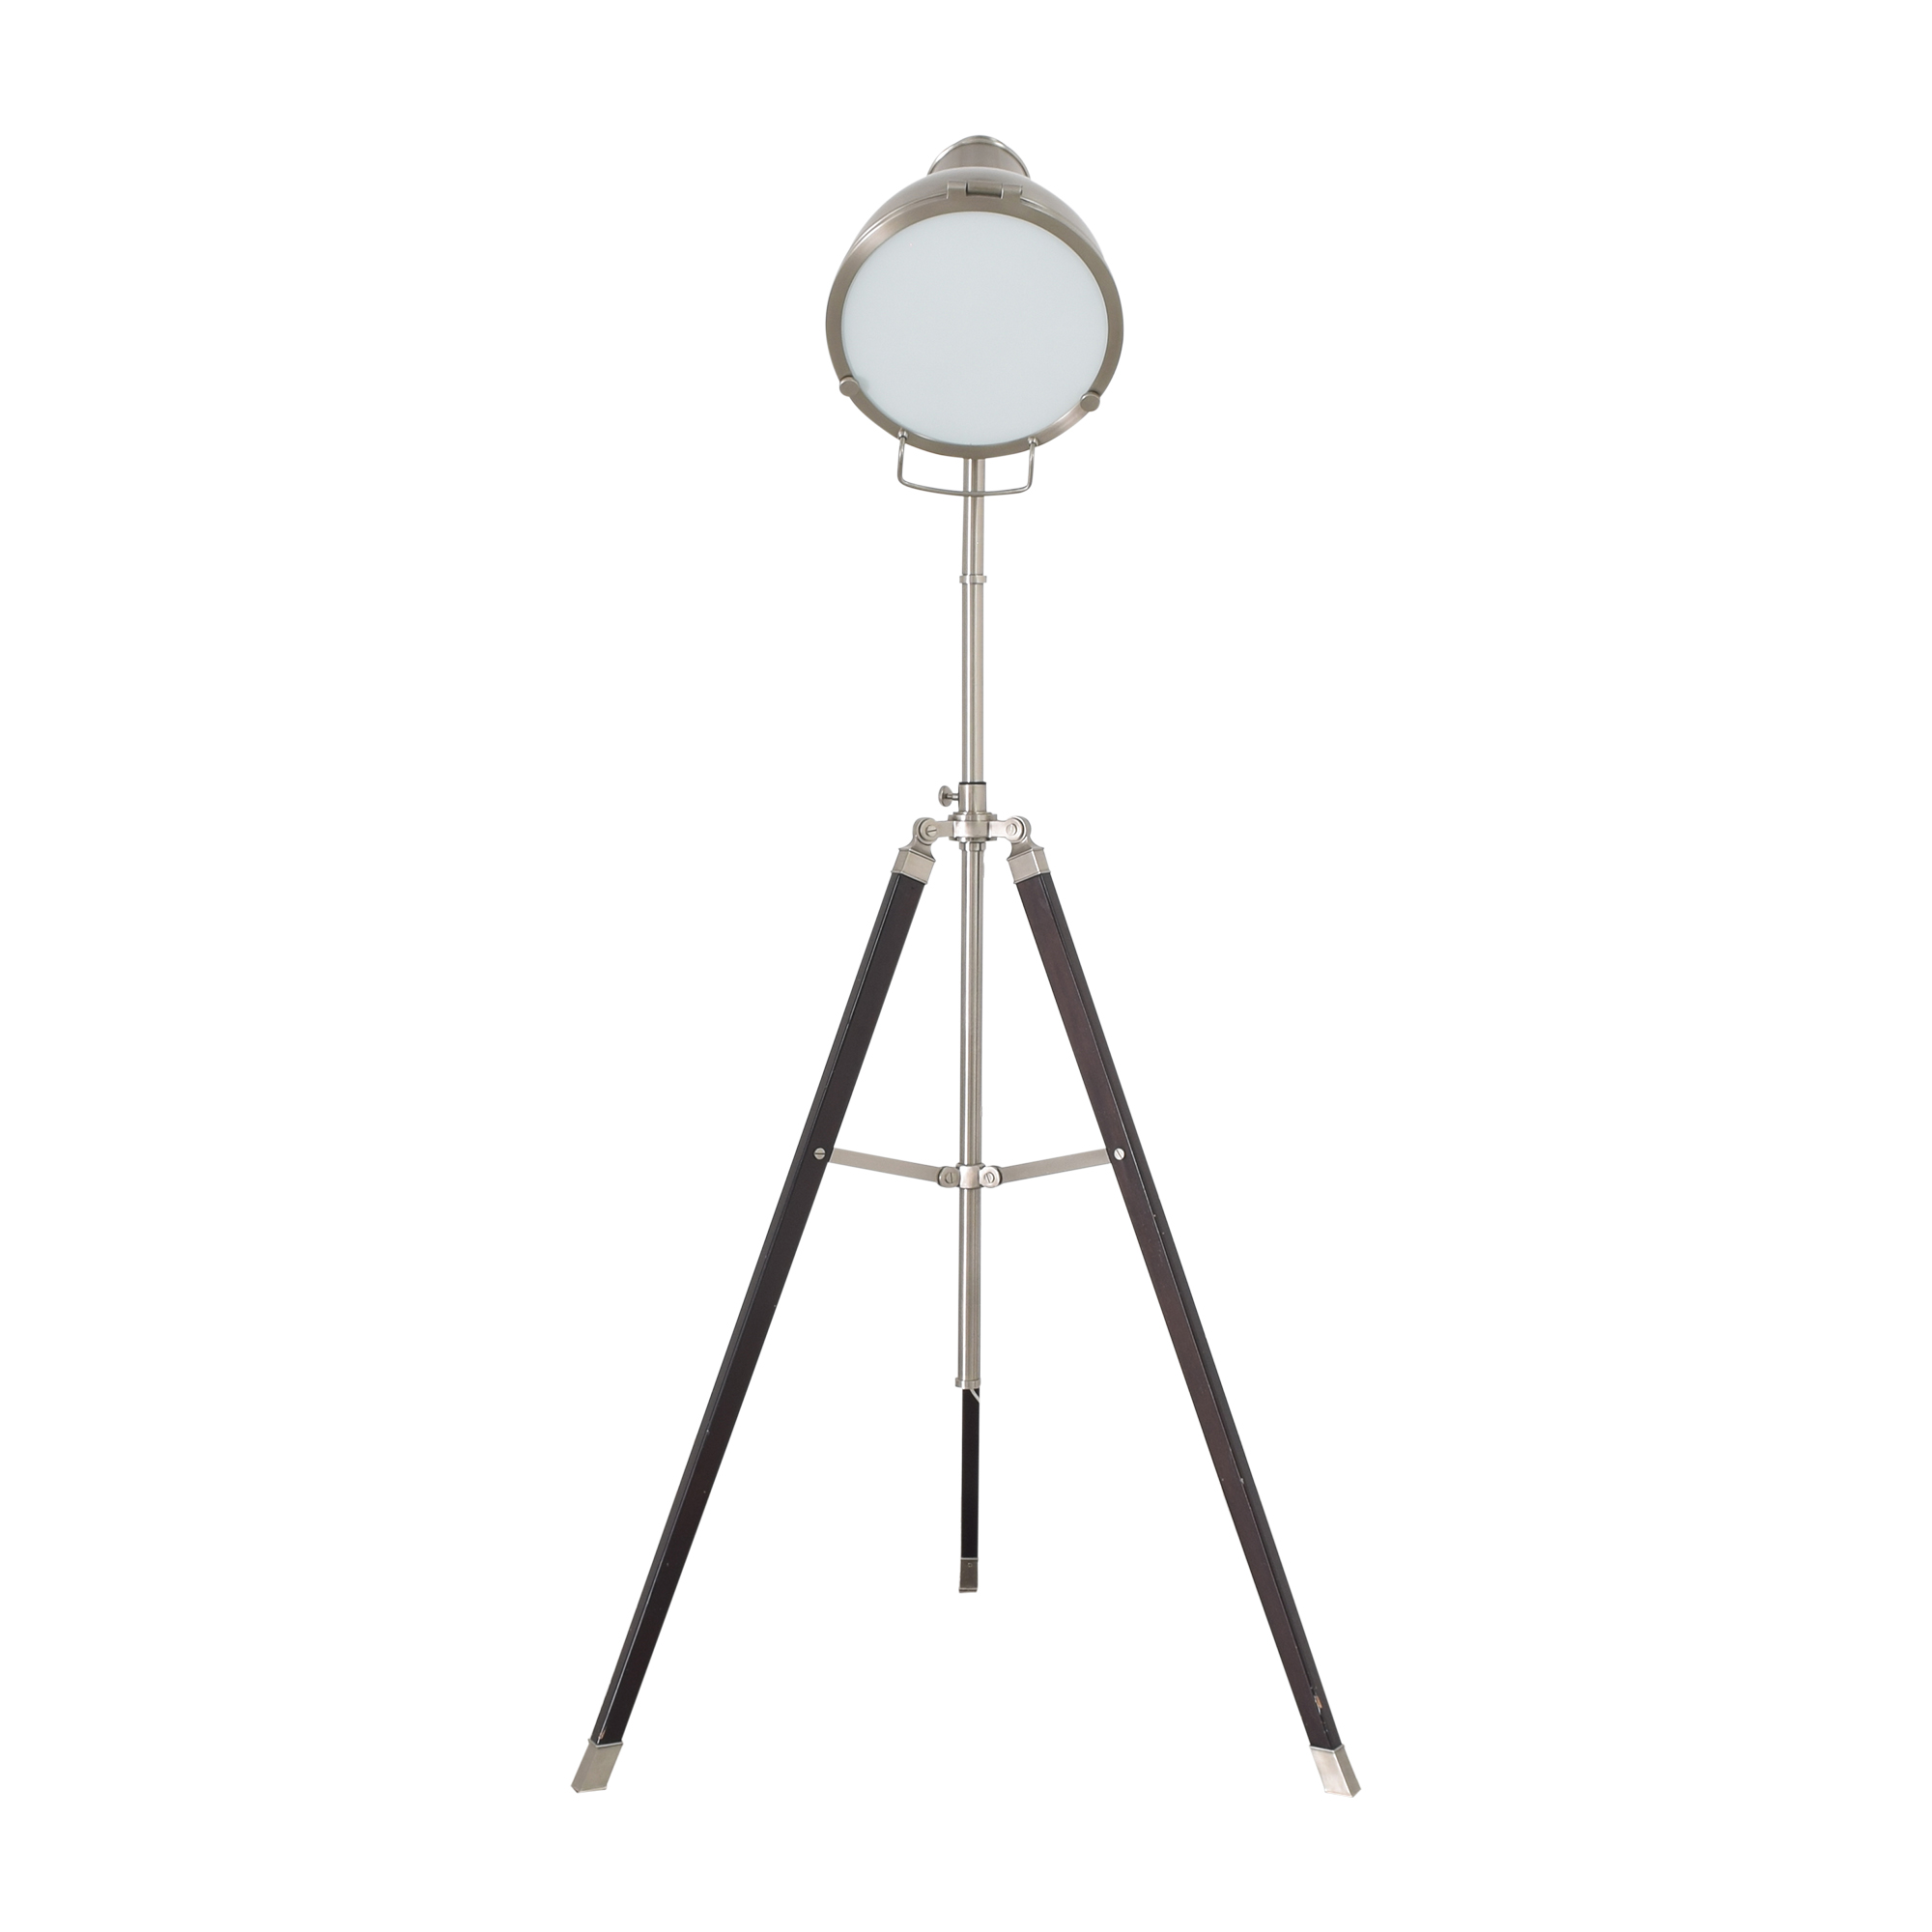 Ethan Allen Retro Photographers Tripod Lamp sale